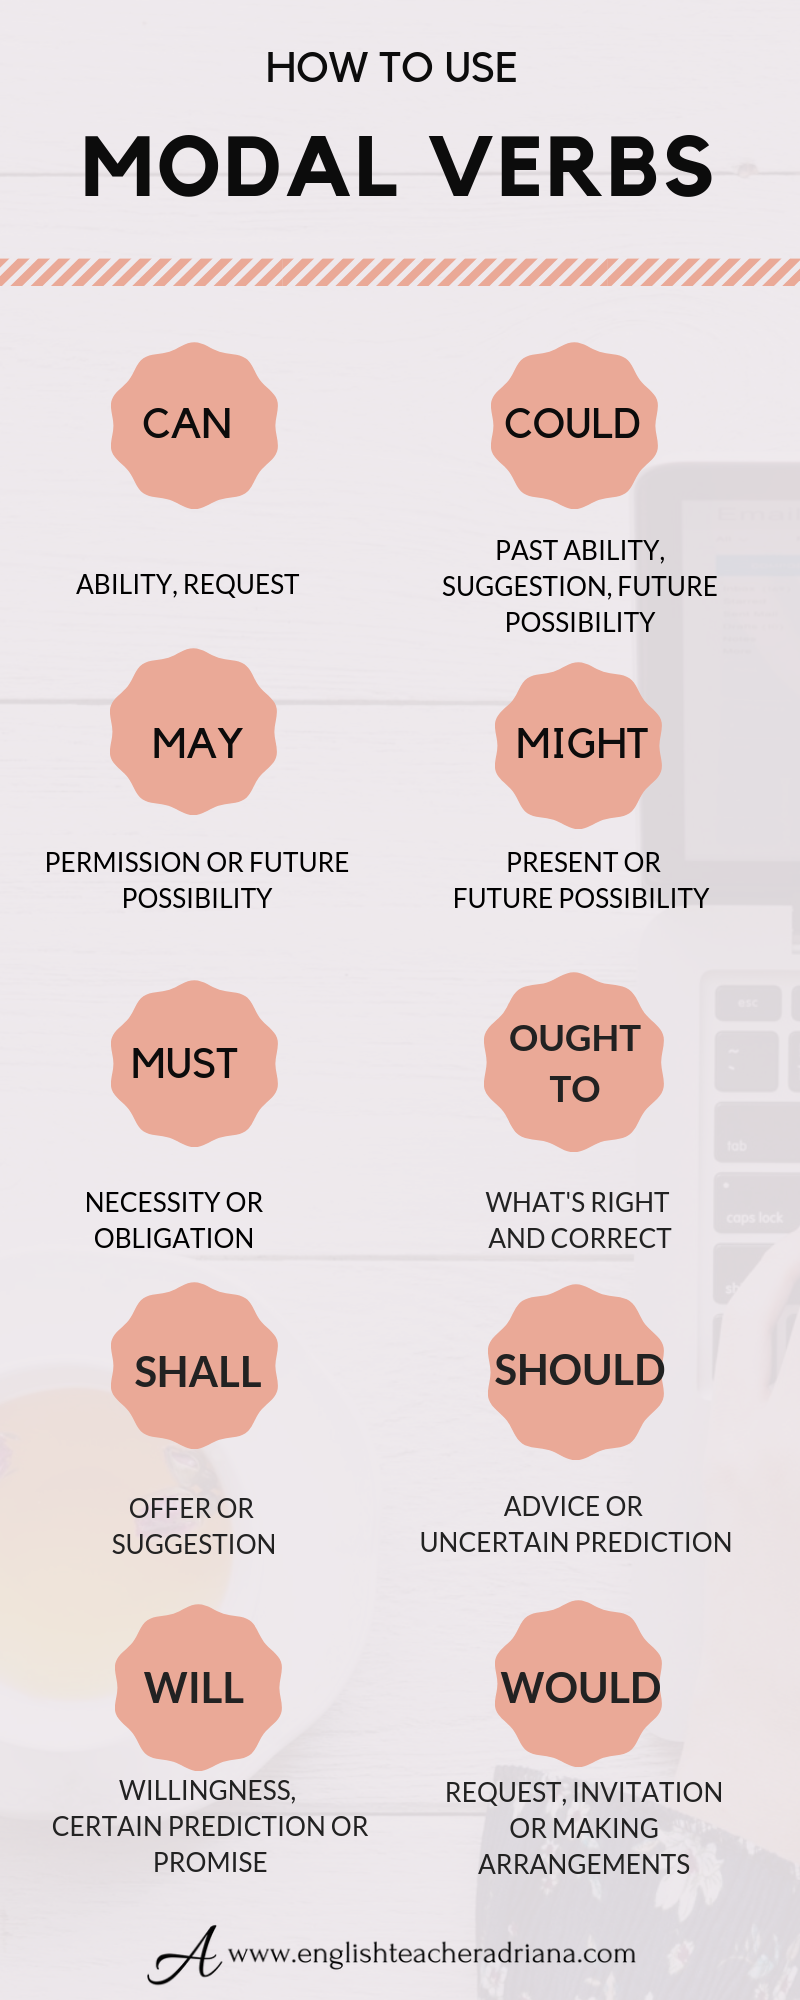 english breakfast #breakfast Modal Verbs to improve your English Grammar skills. Click the link below to learn how to use modal verbs in English